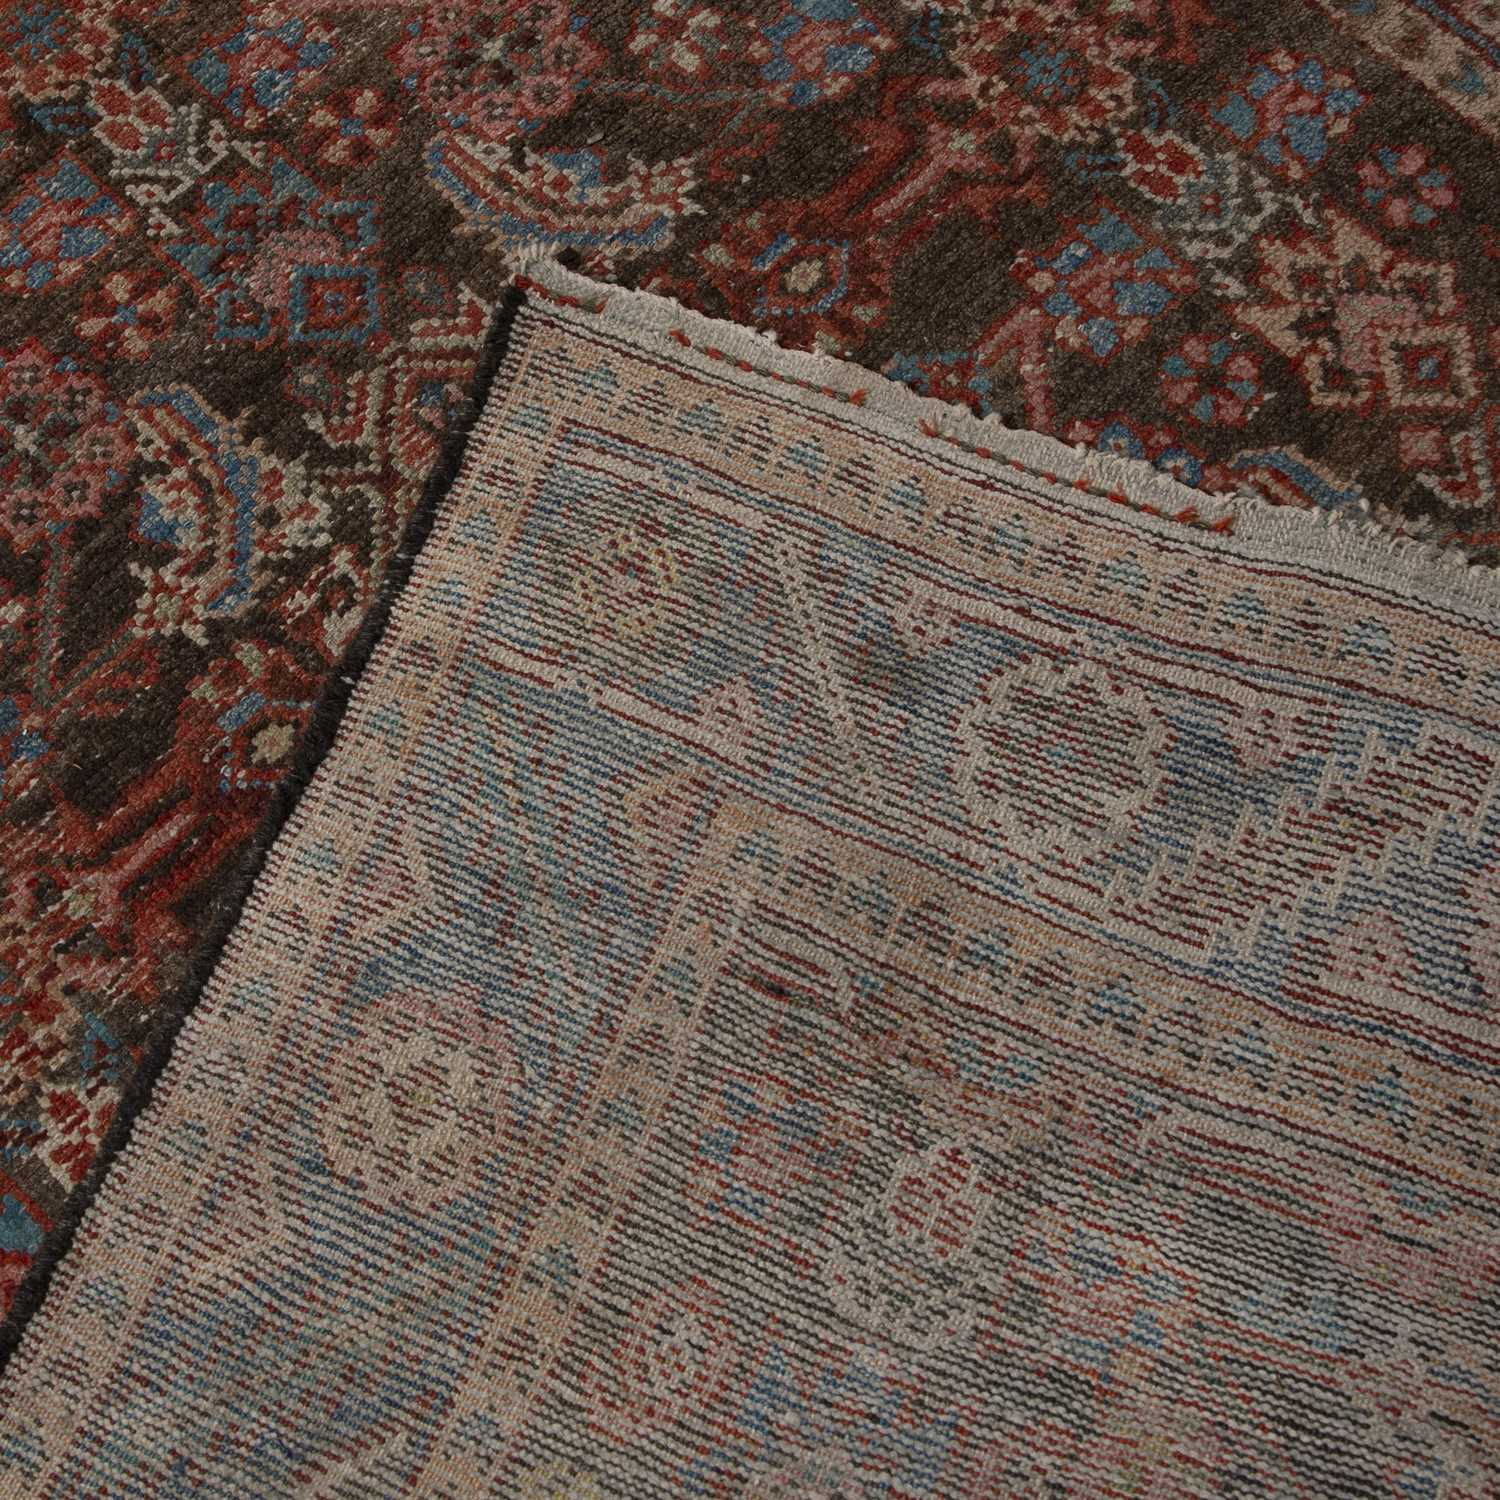 A Persian Bakshaish runner with a complex design of flowers and motifs within a triple border, 302 x - Image 2 of 2